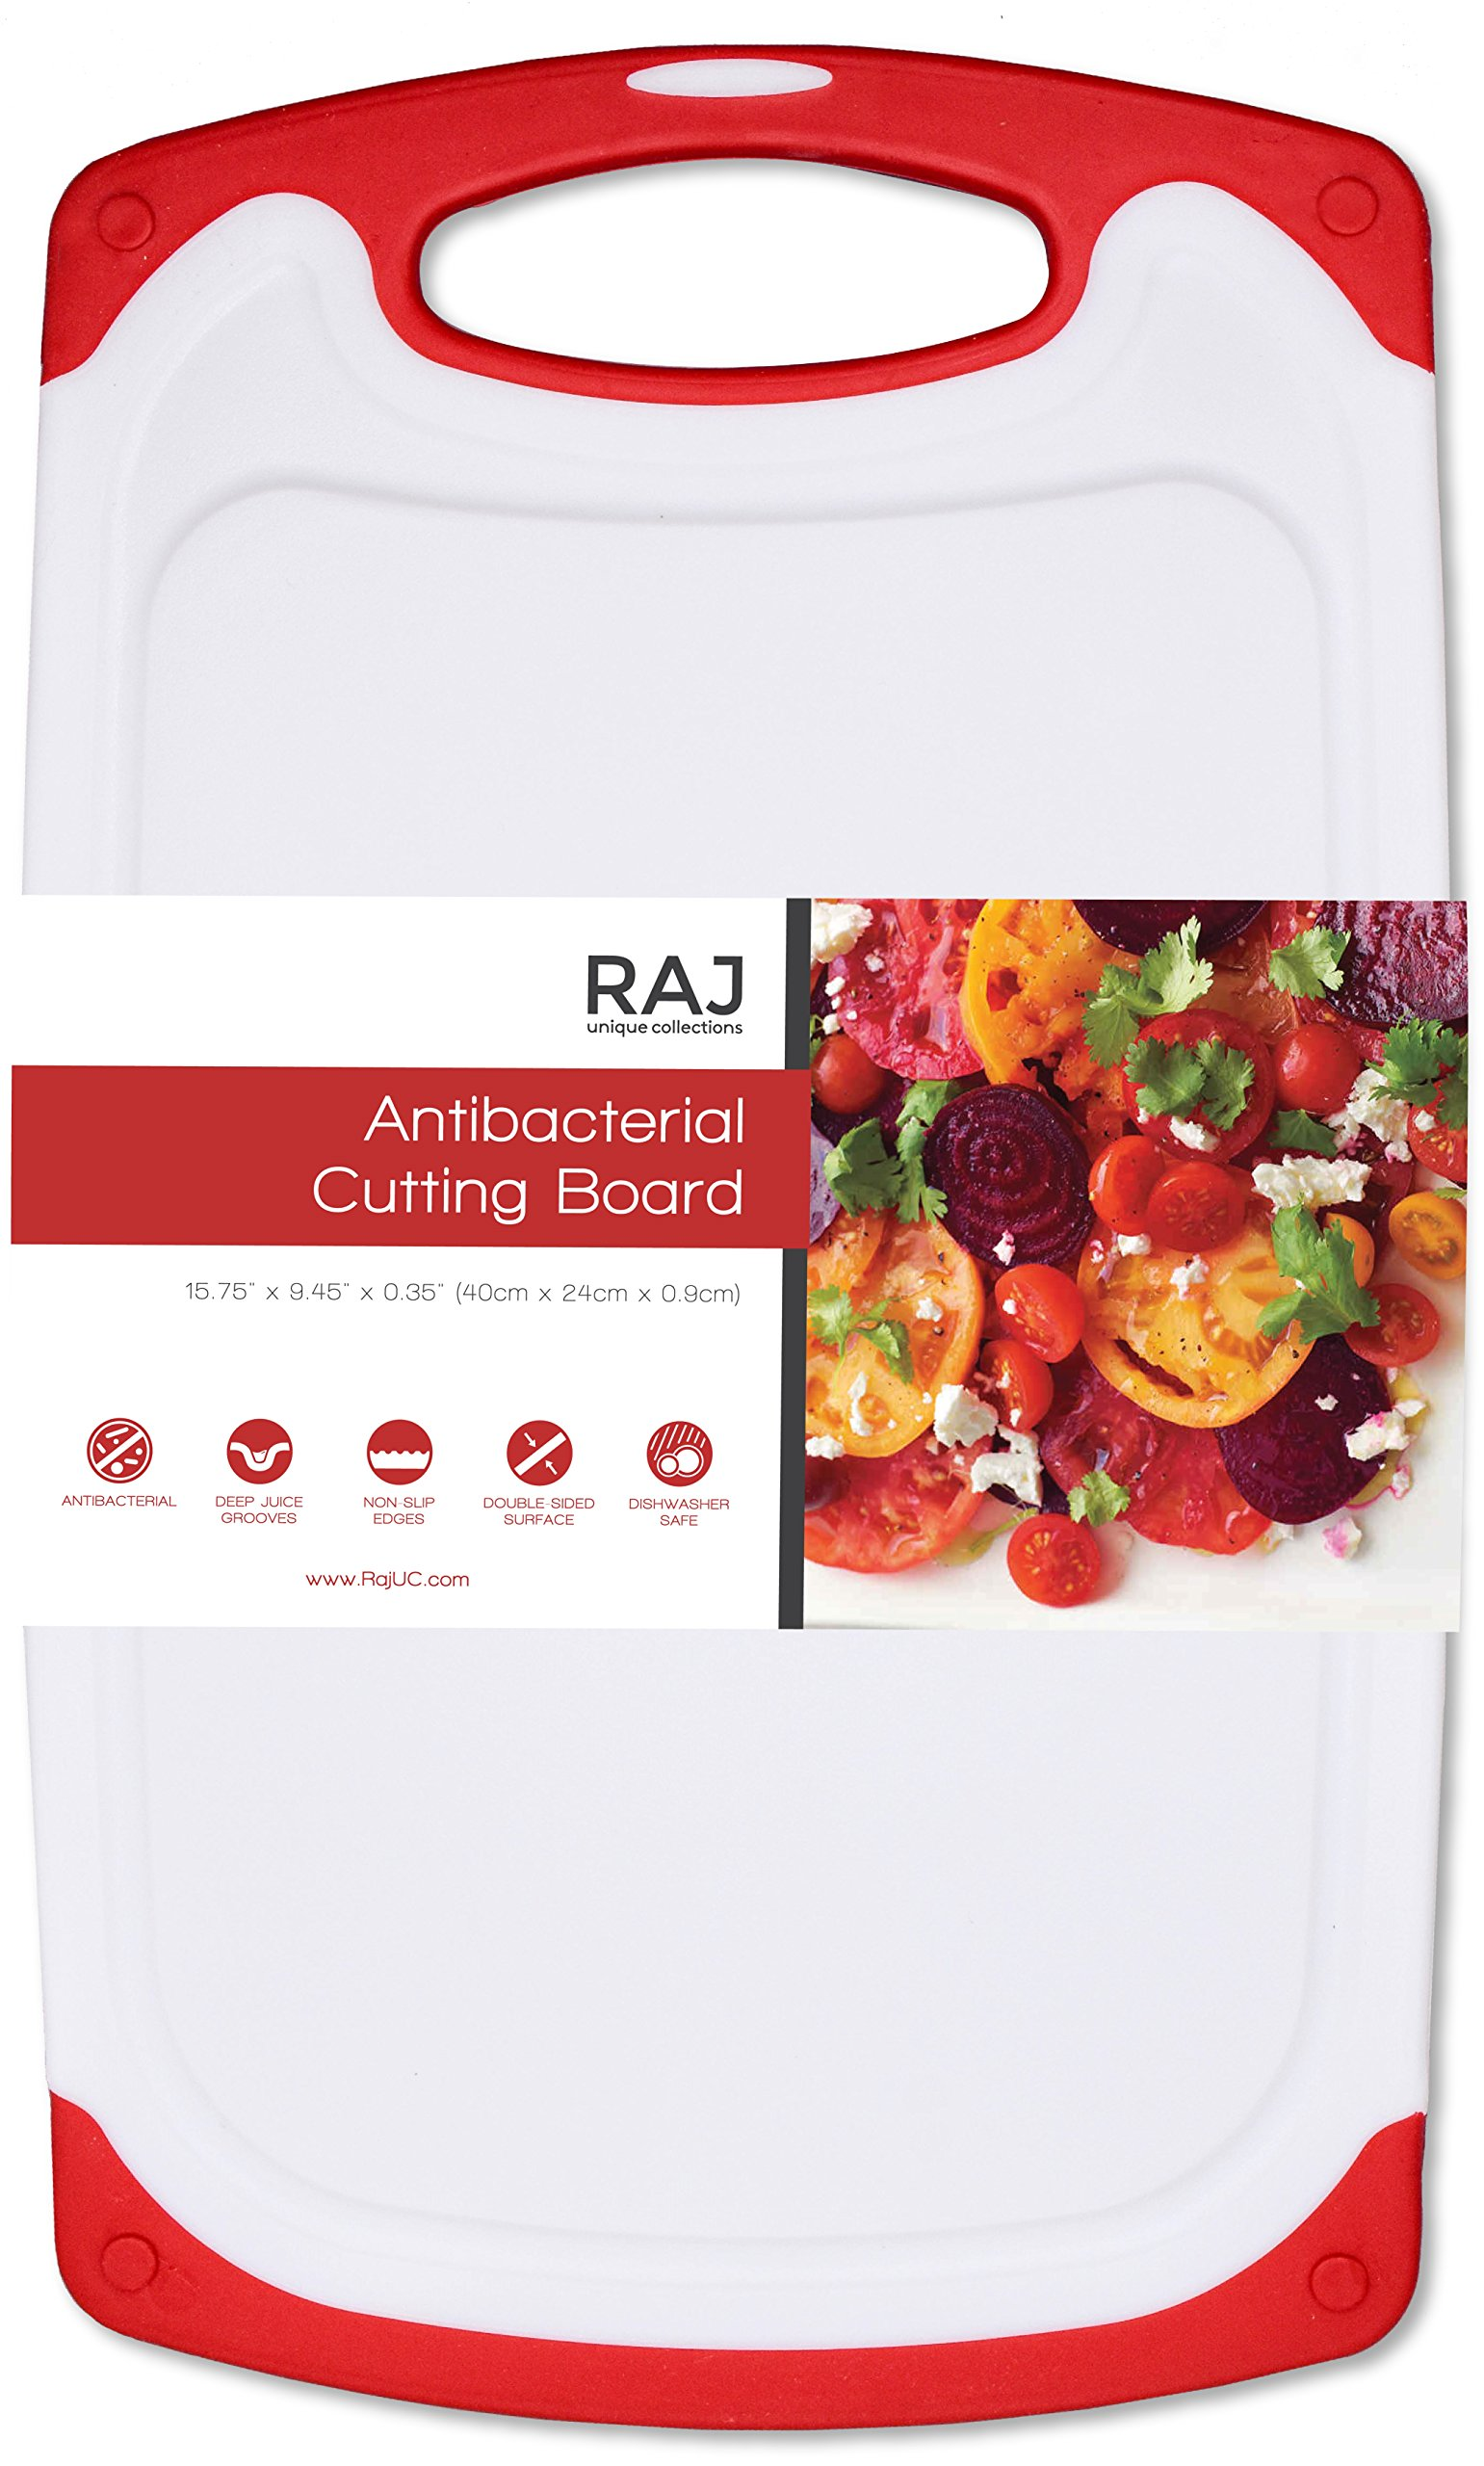 Raj Non-Slip Antibacterial Plastic Cutting Board, Deep Juice Groove, Dishwasher Safe, BPA Free, FDA Approved White and green (1 Piece Large, White board with Red Ends)